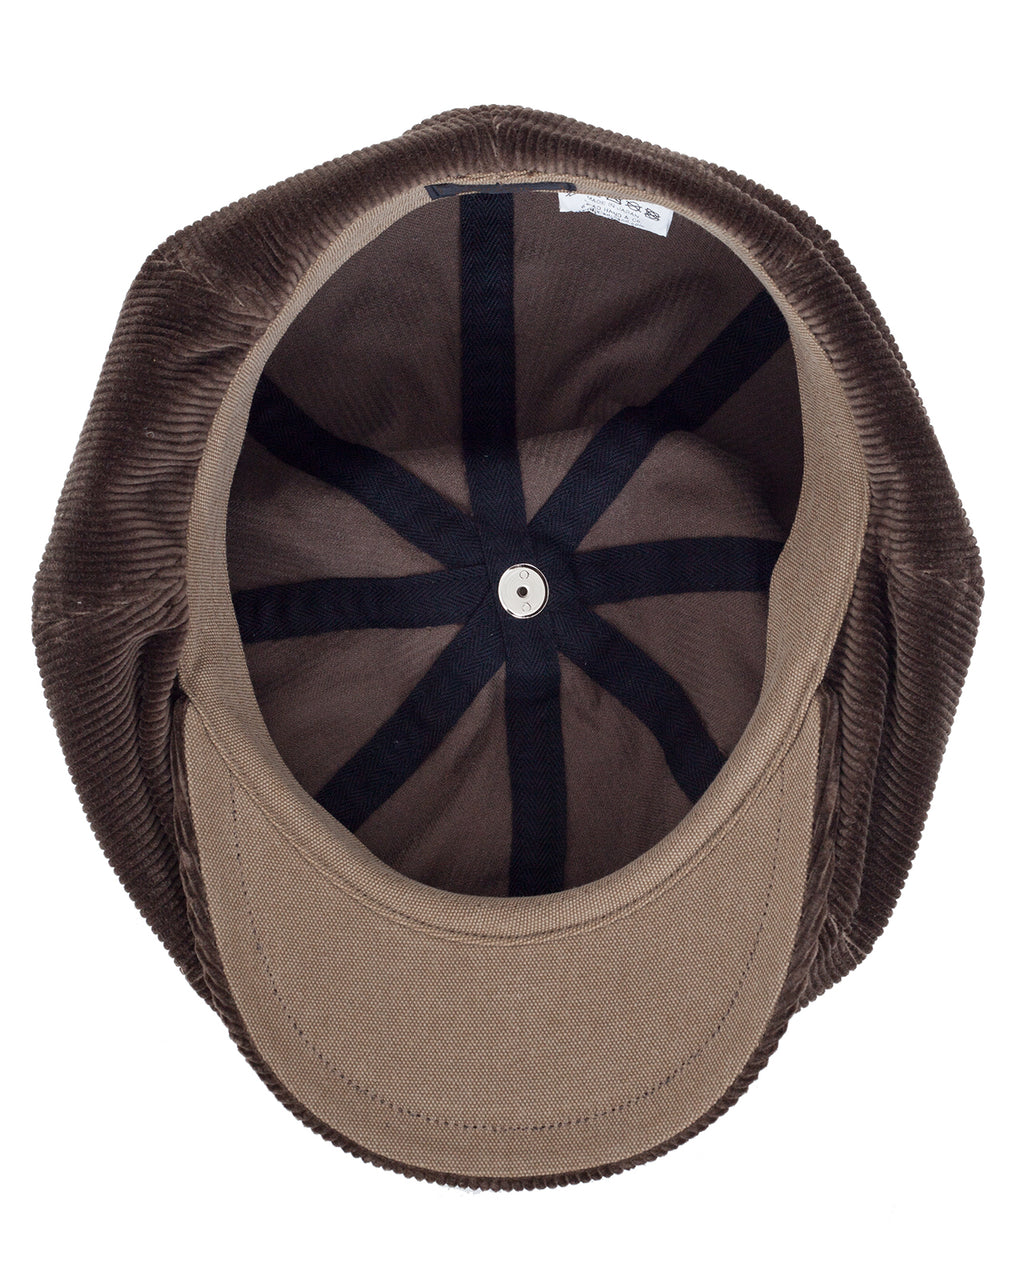 By Glad Hand, Brother Union Casquette, Brown